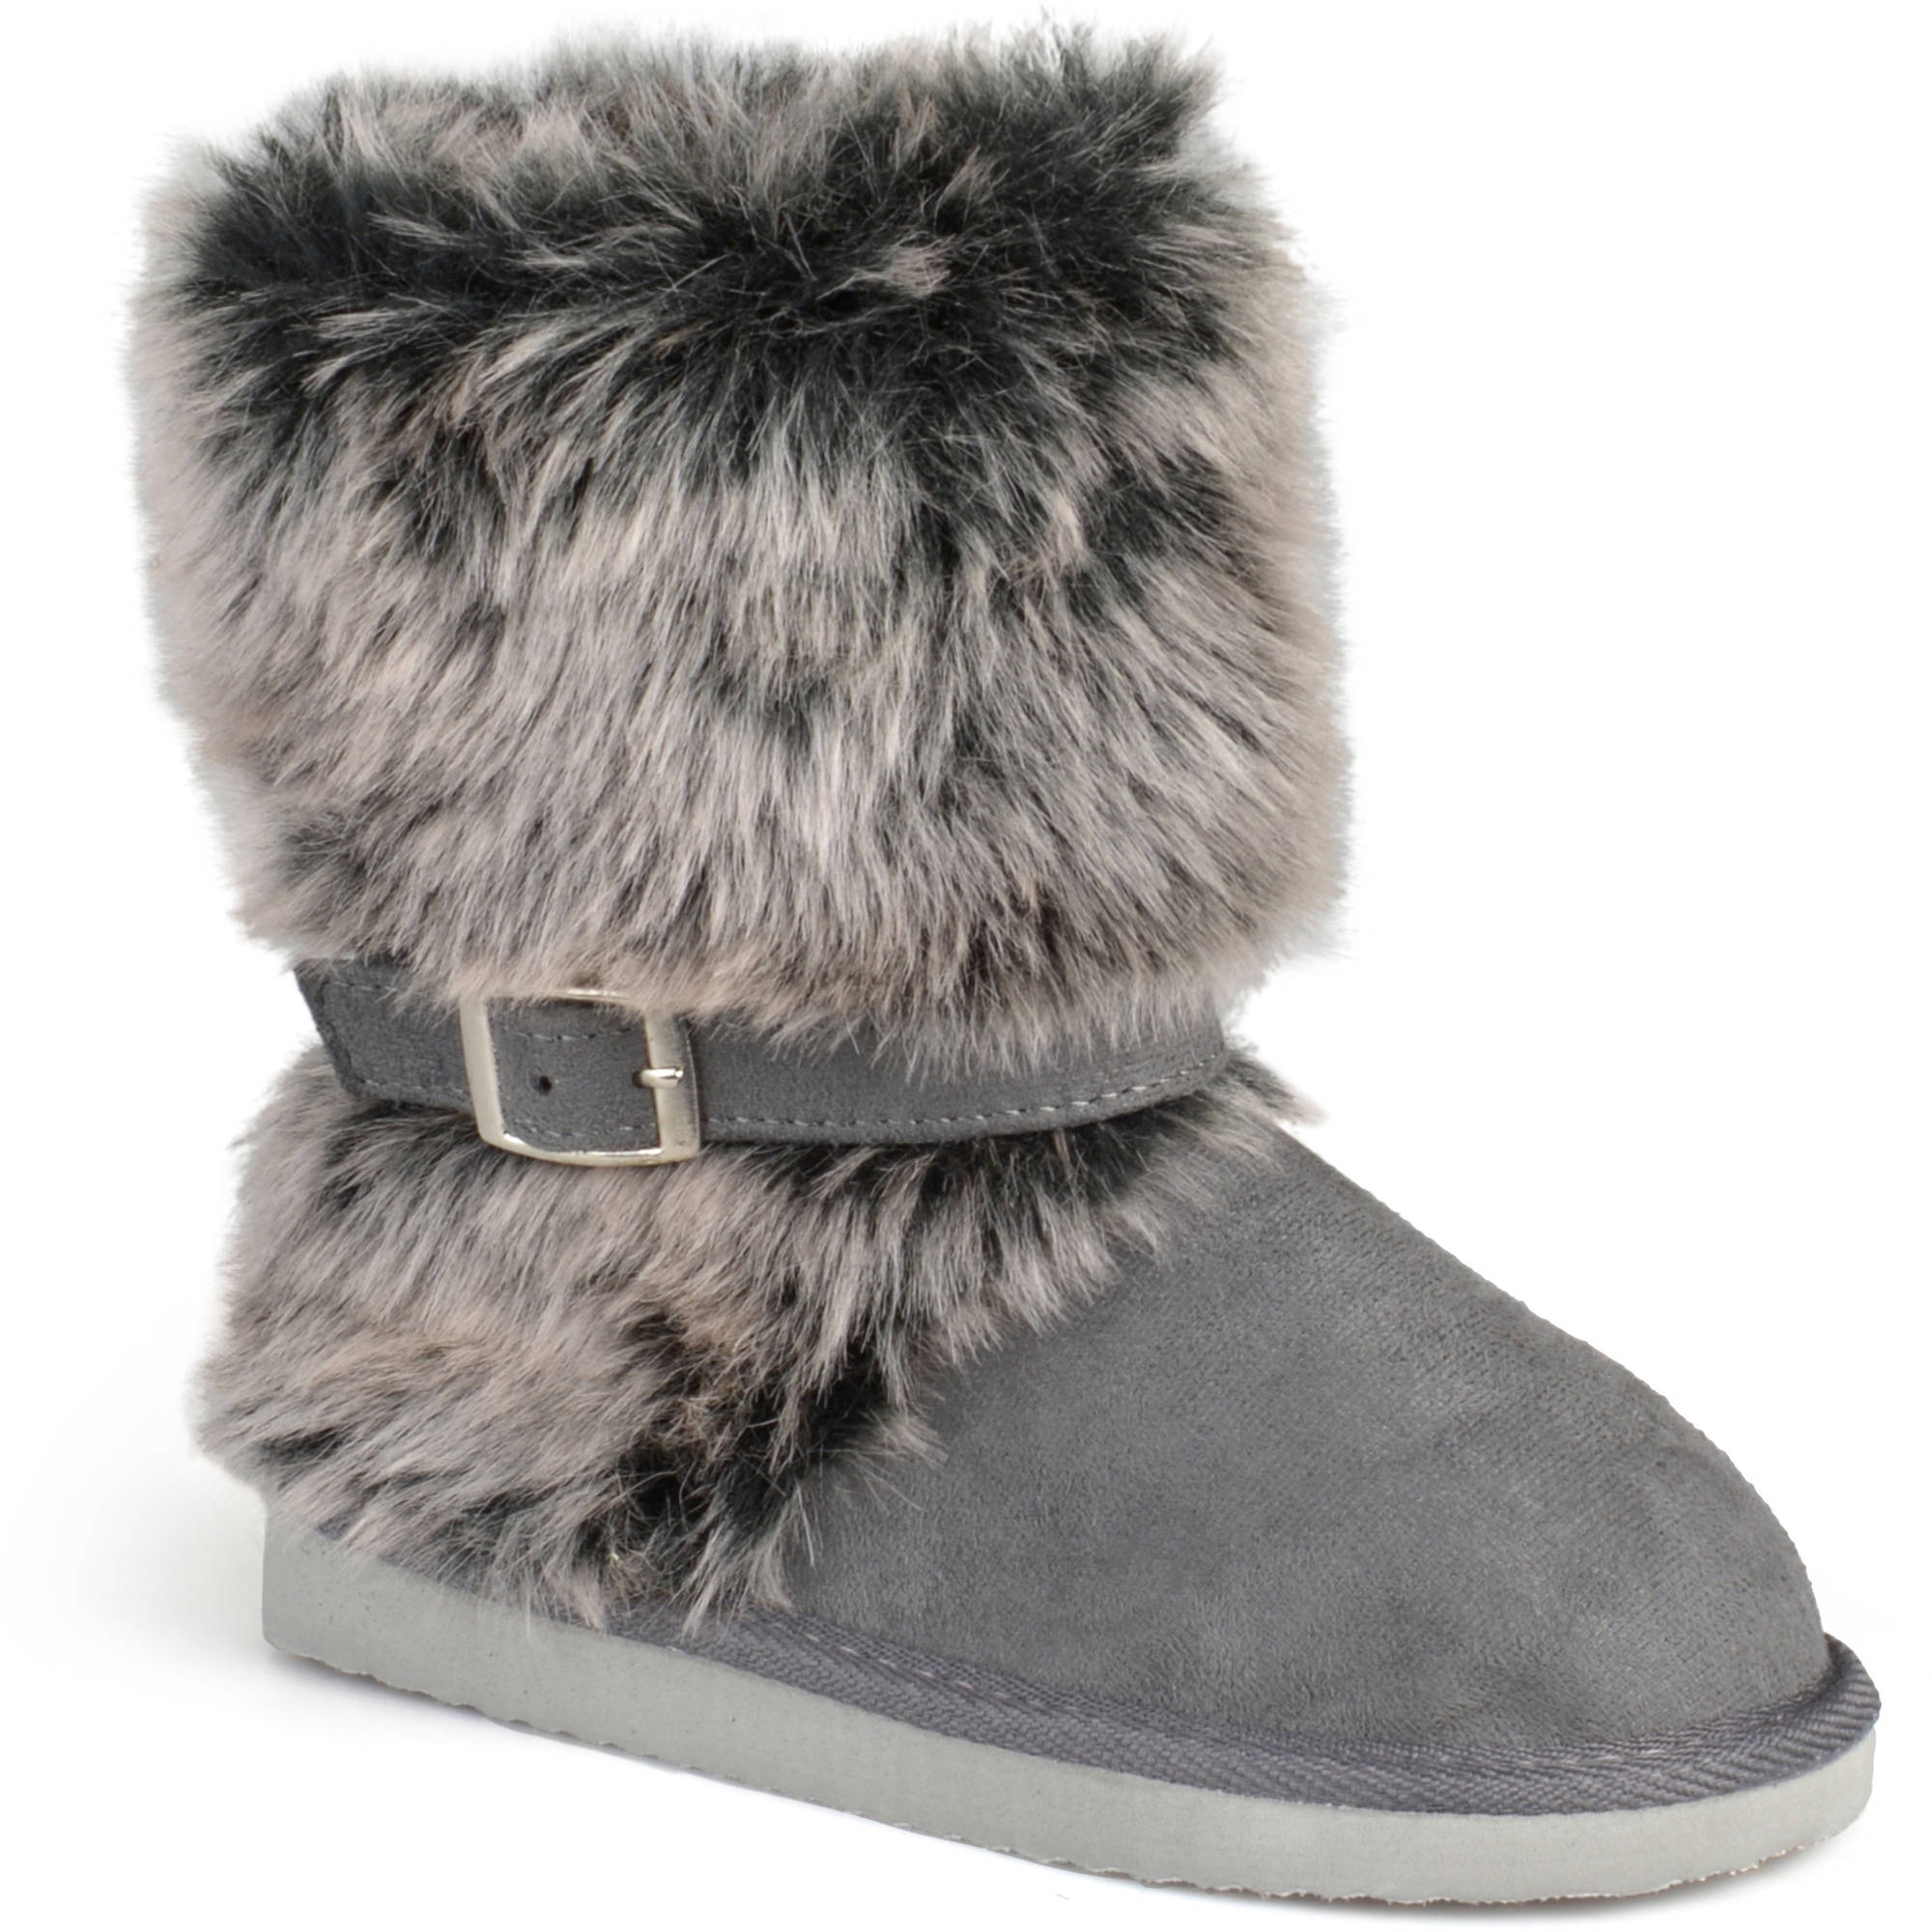 Brinley Co. Girls' Buckle Accent Faux Fur Boots